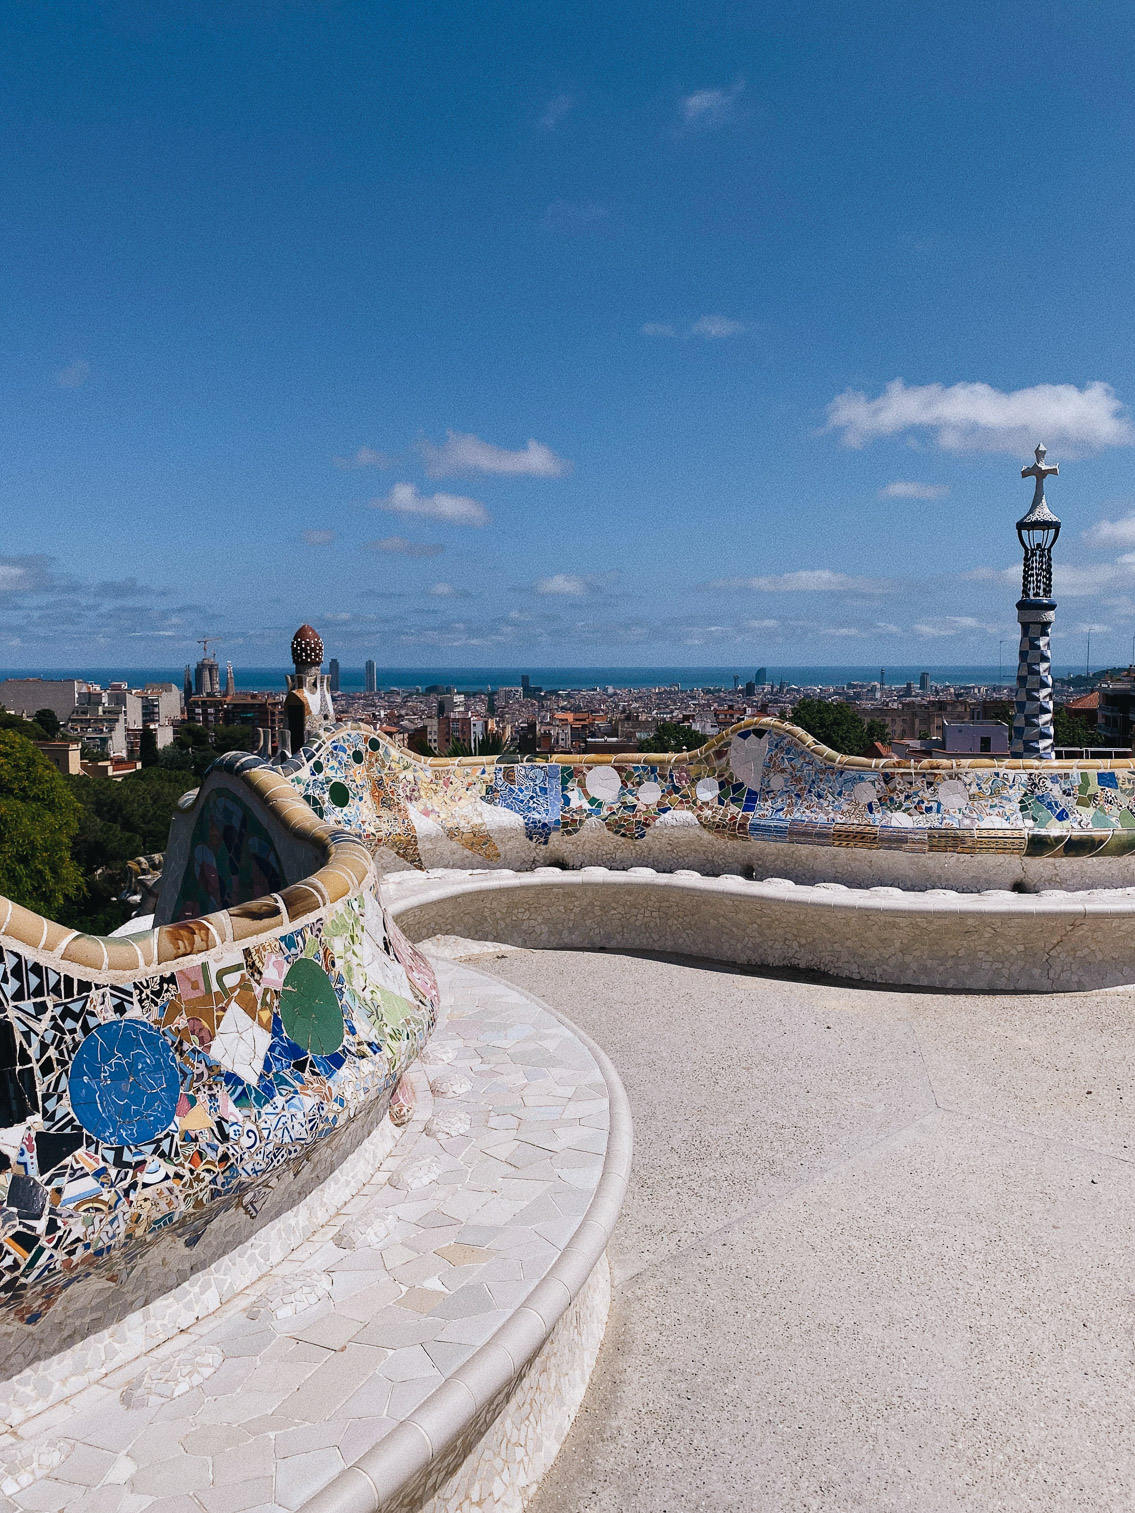 Park Guell Barcelona 2020 - The cat, you and us